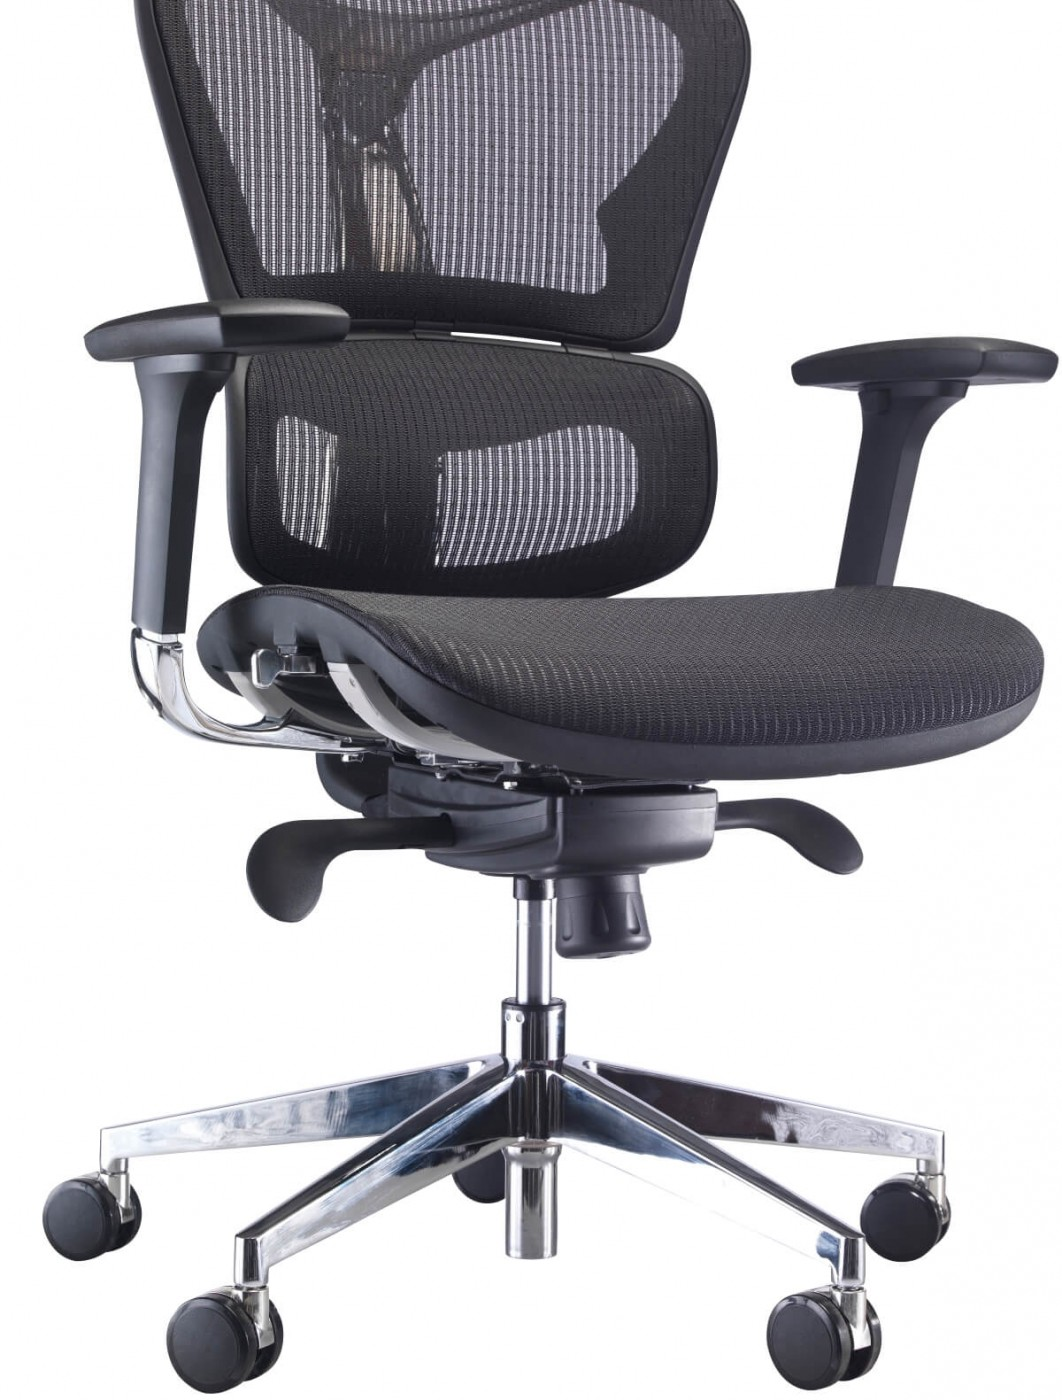 Office chairs grande executive mesh office chair ch1911 enlarged view